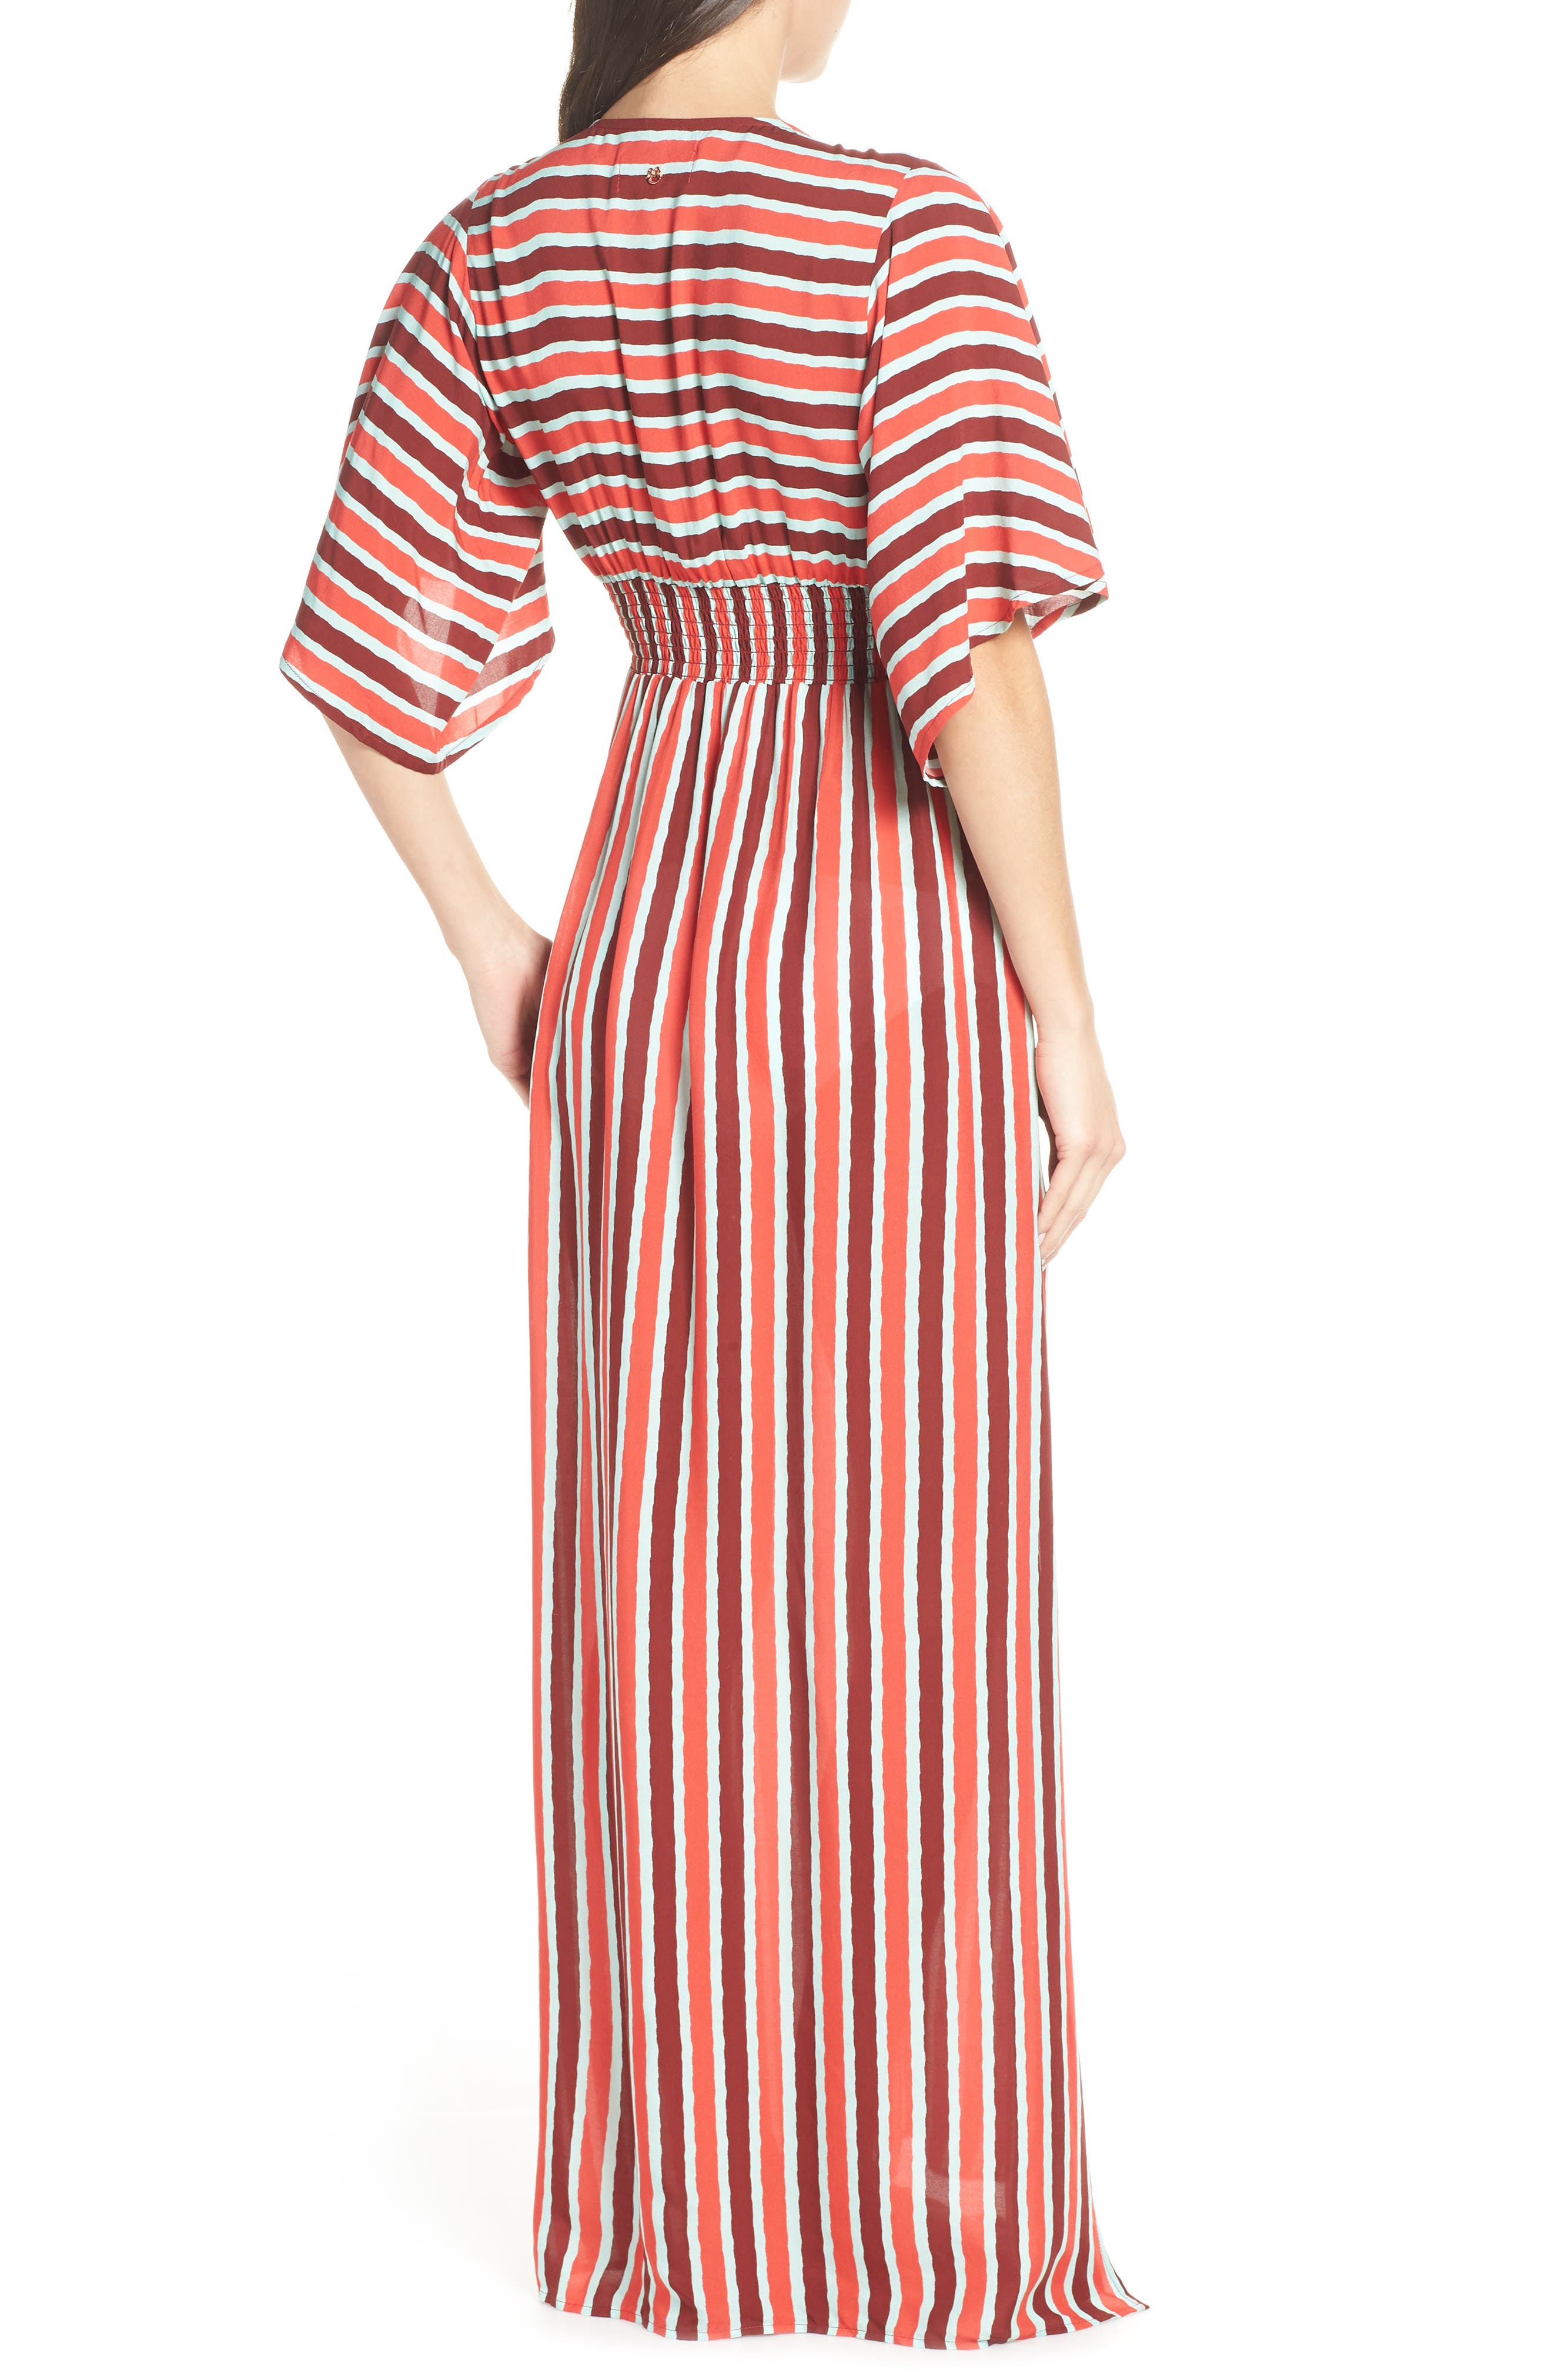 Morning Glam Cover-Up Maxi Dress,                             Alternate thumbnail 2, color,                             MULTI RED